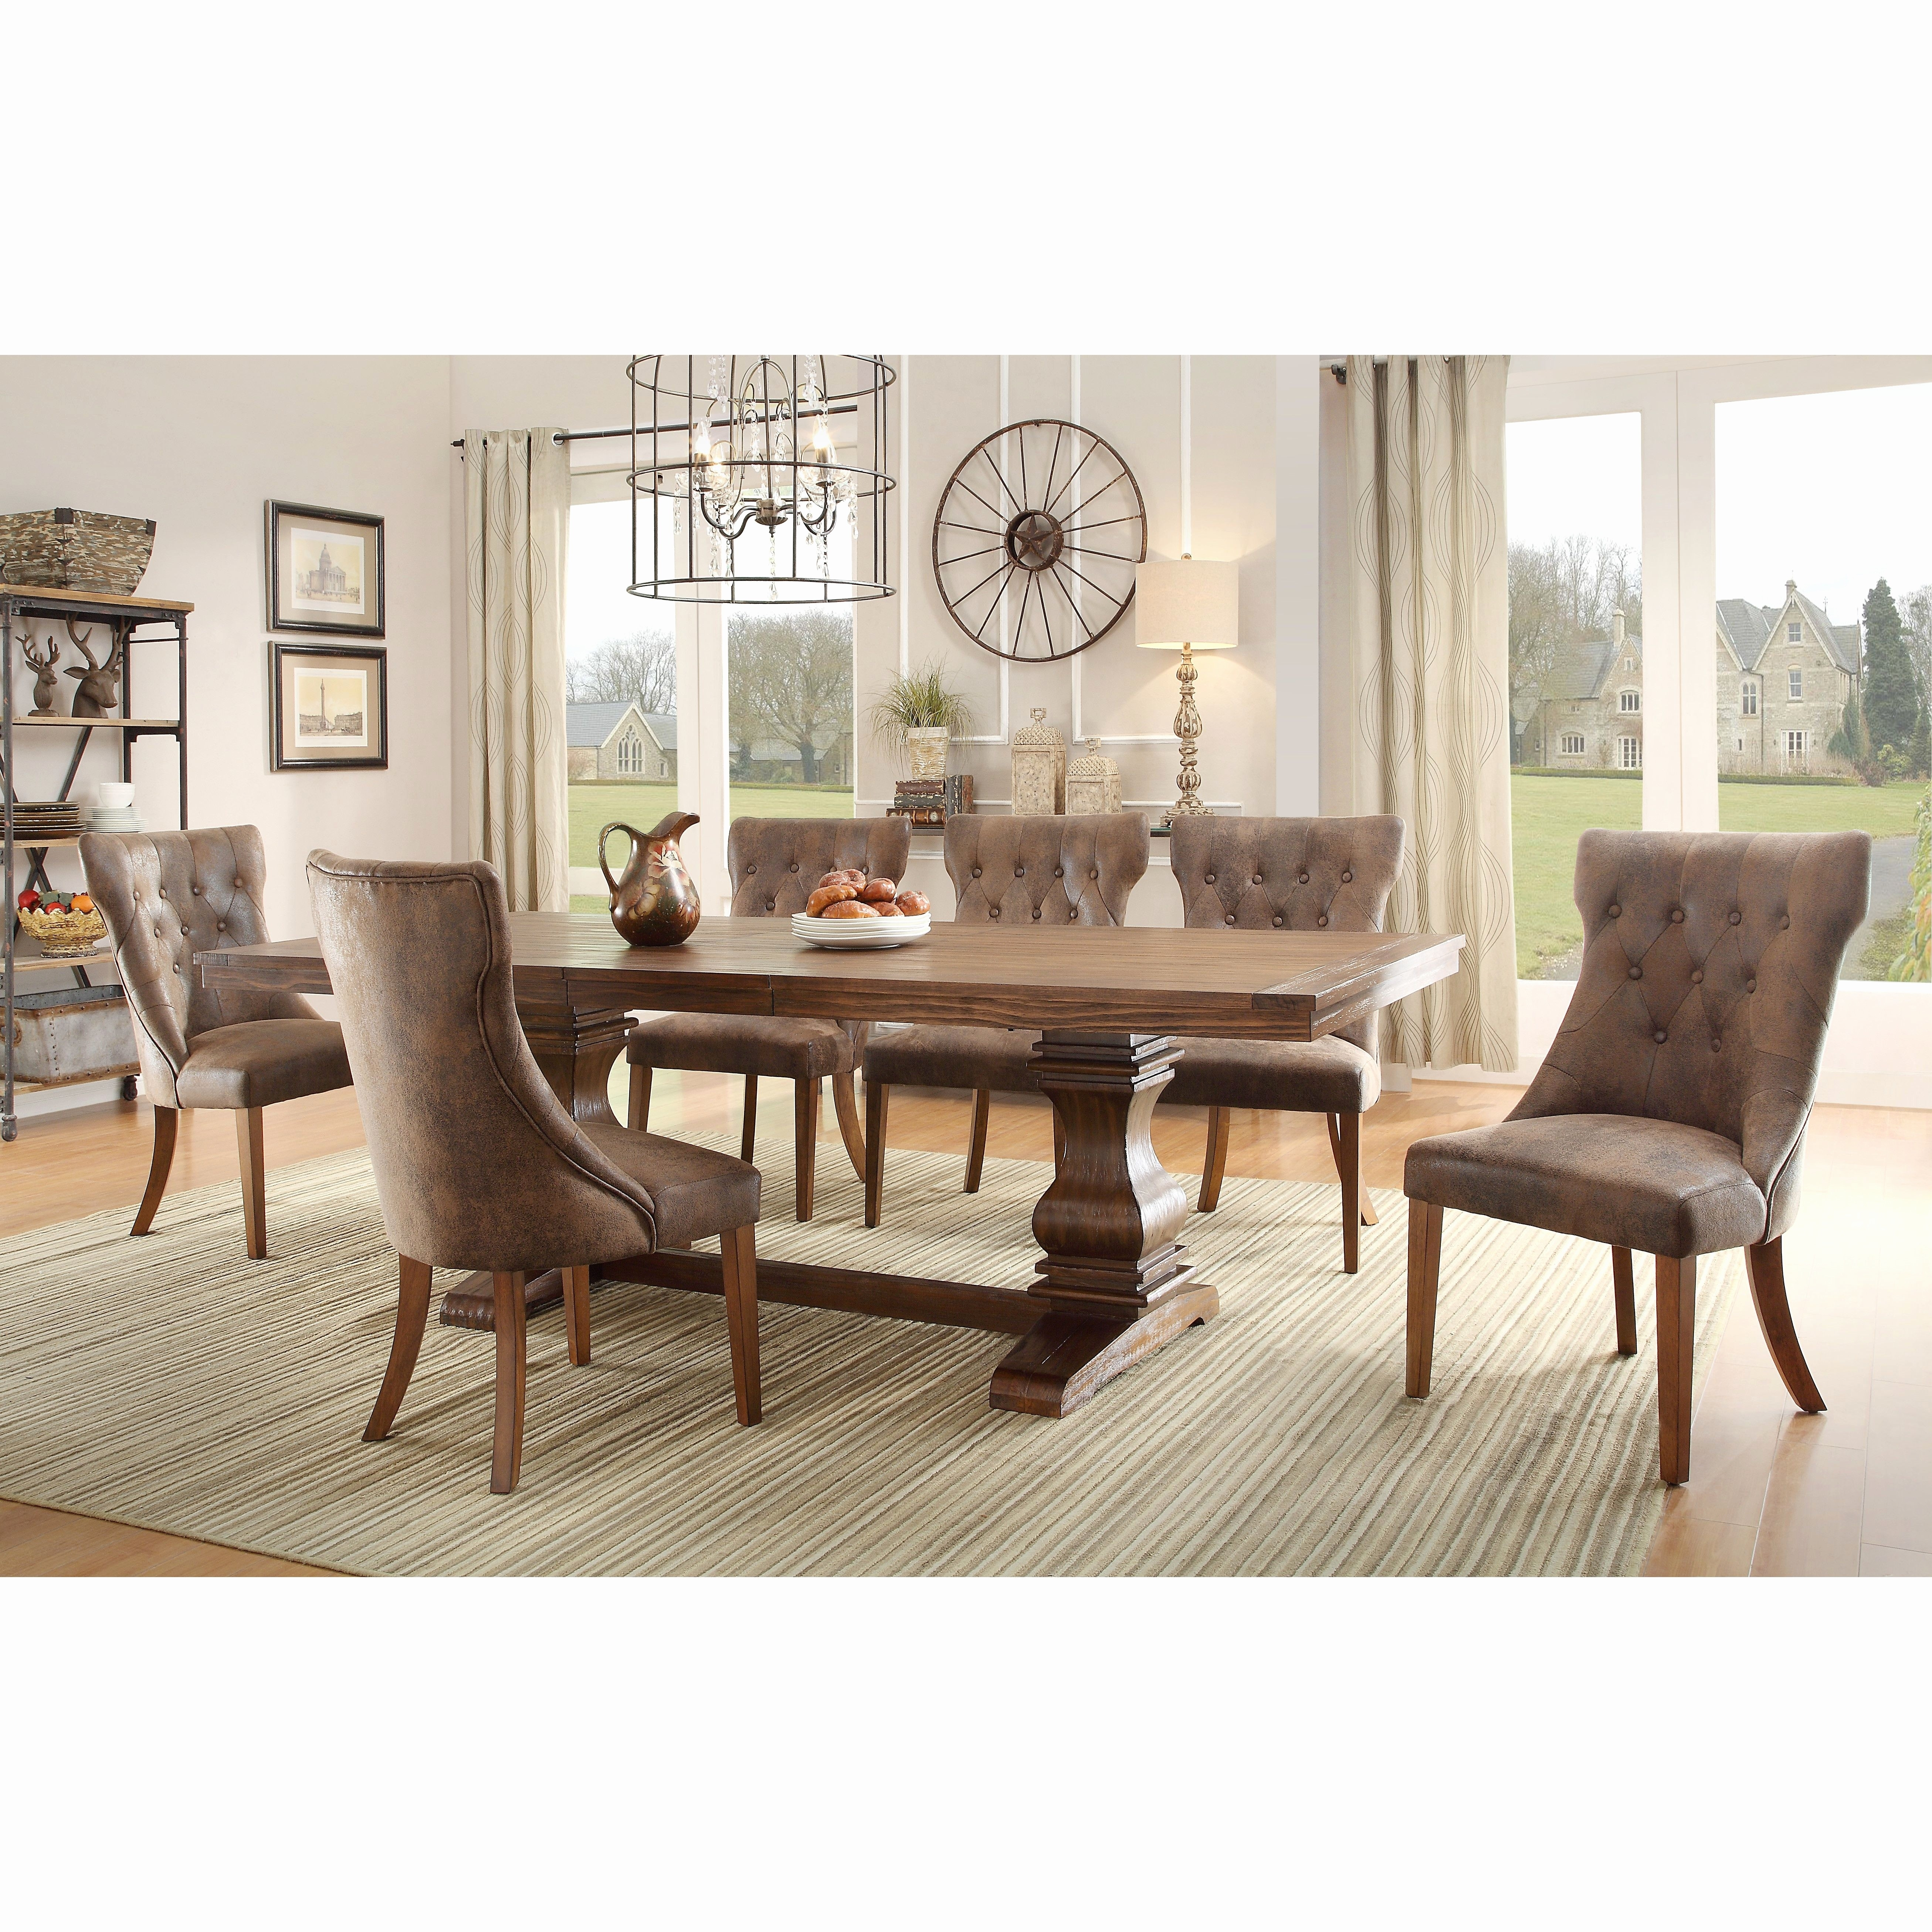 20 Elegant Coralayne Dining Set | Interiorz (Image 1 of 20)